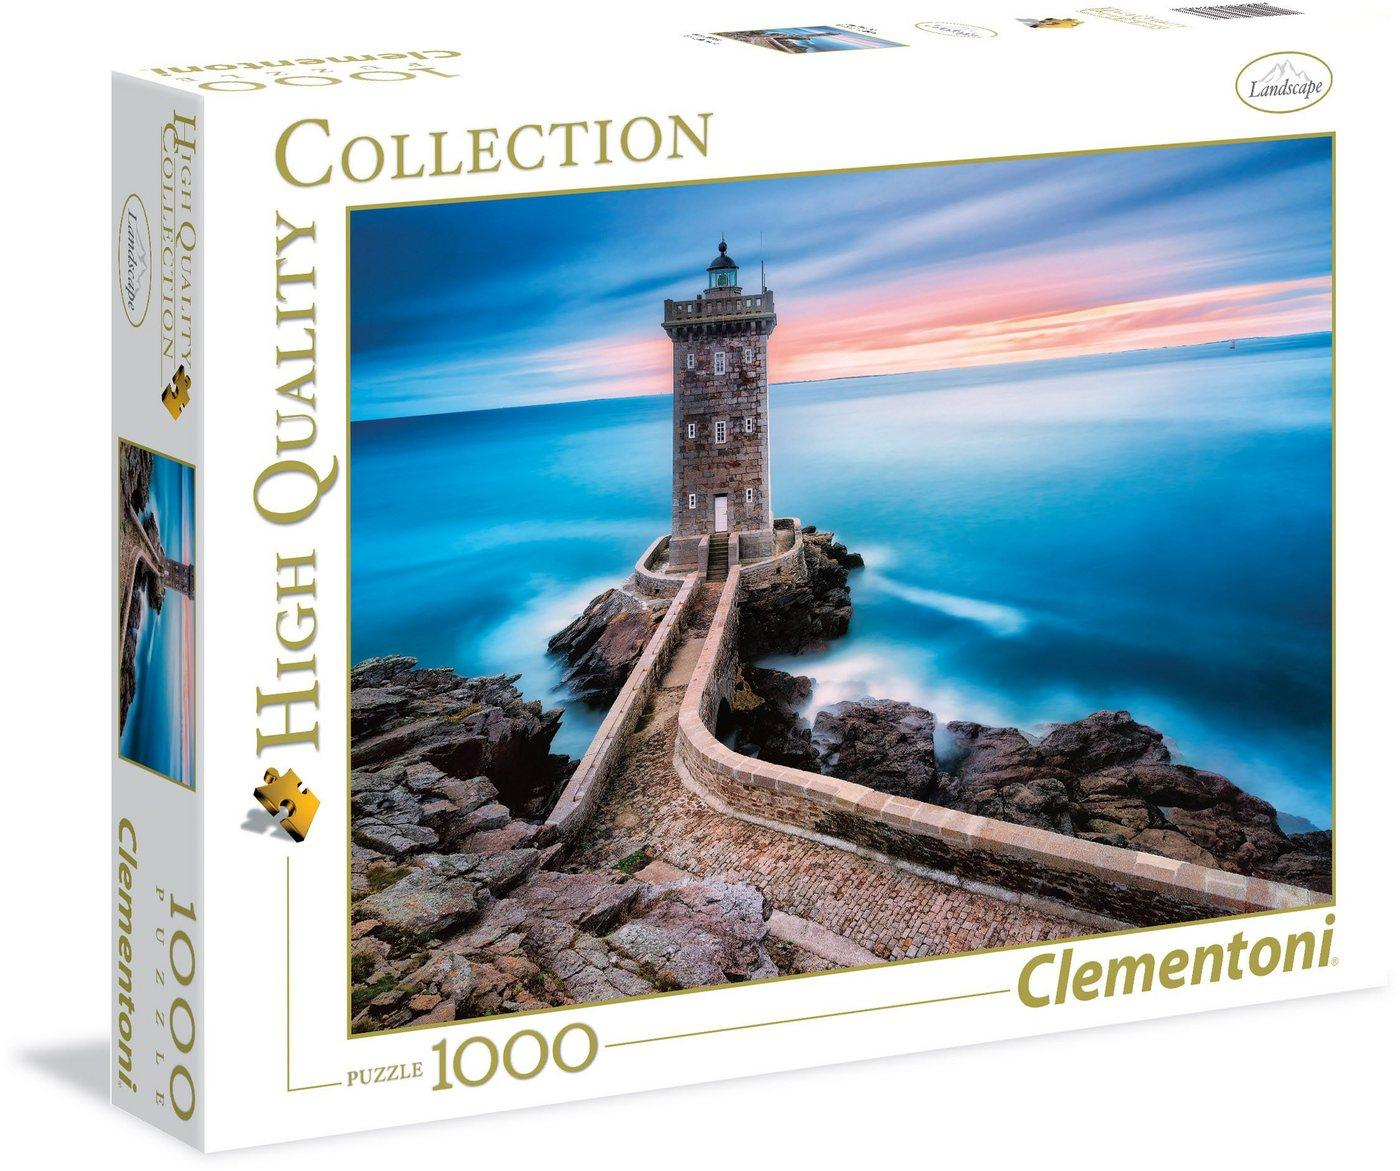 Clementoni® Puzzle »High Quality Collection - Der Leuchtturm«, 1000 Puzzleteile, Made in Europe